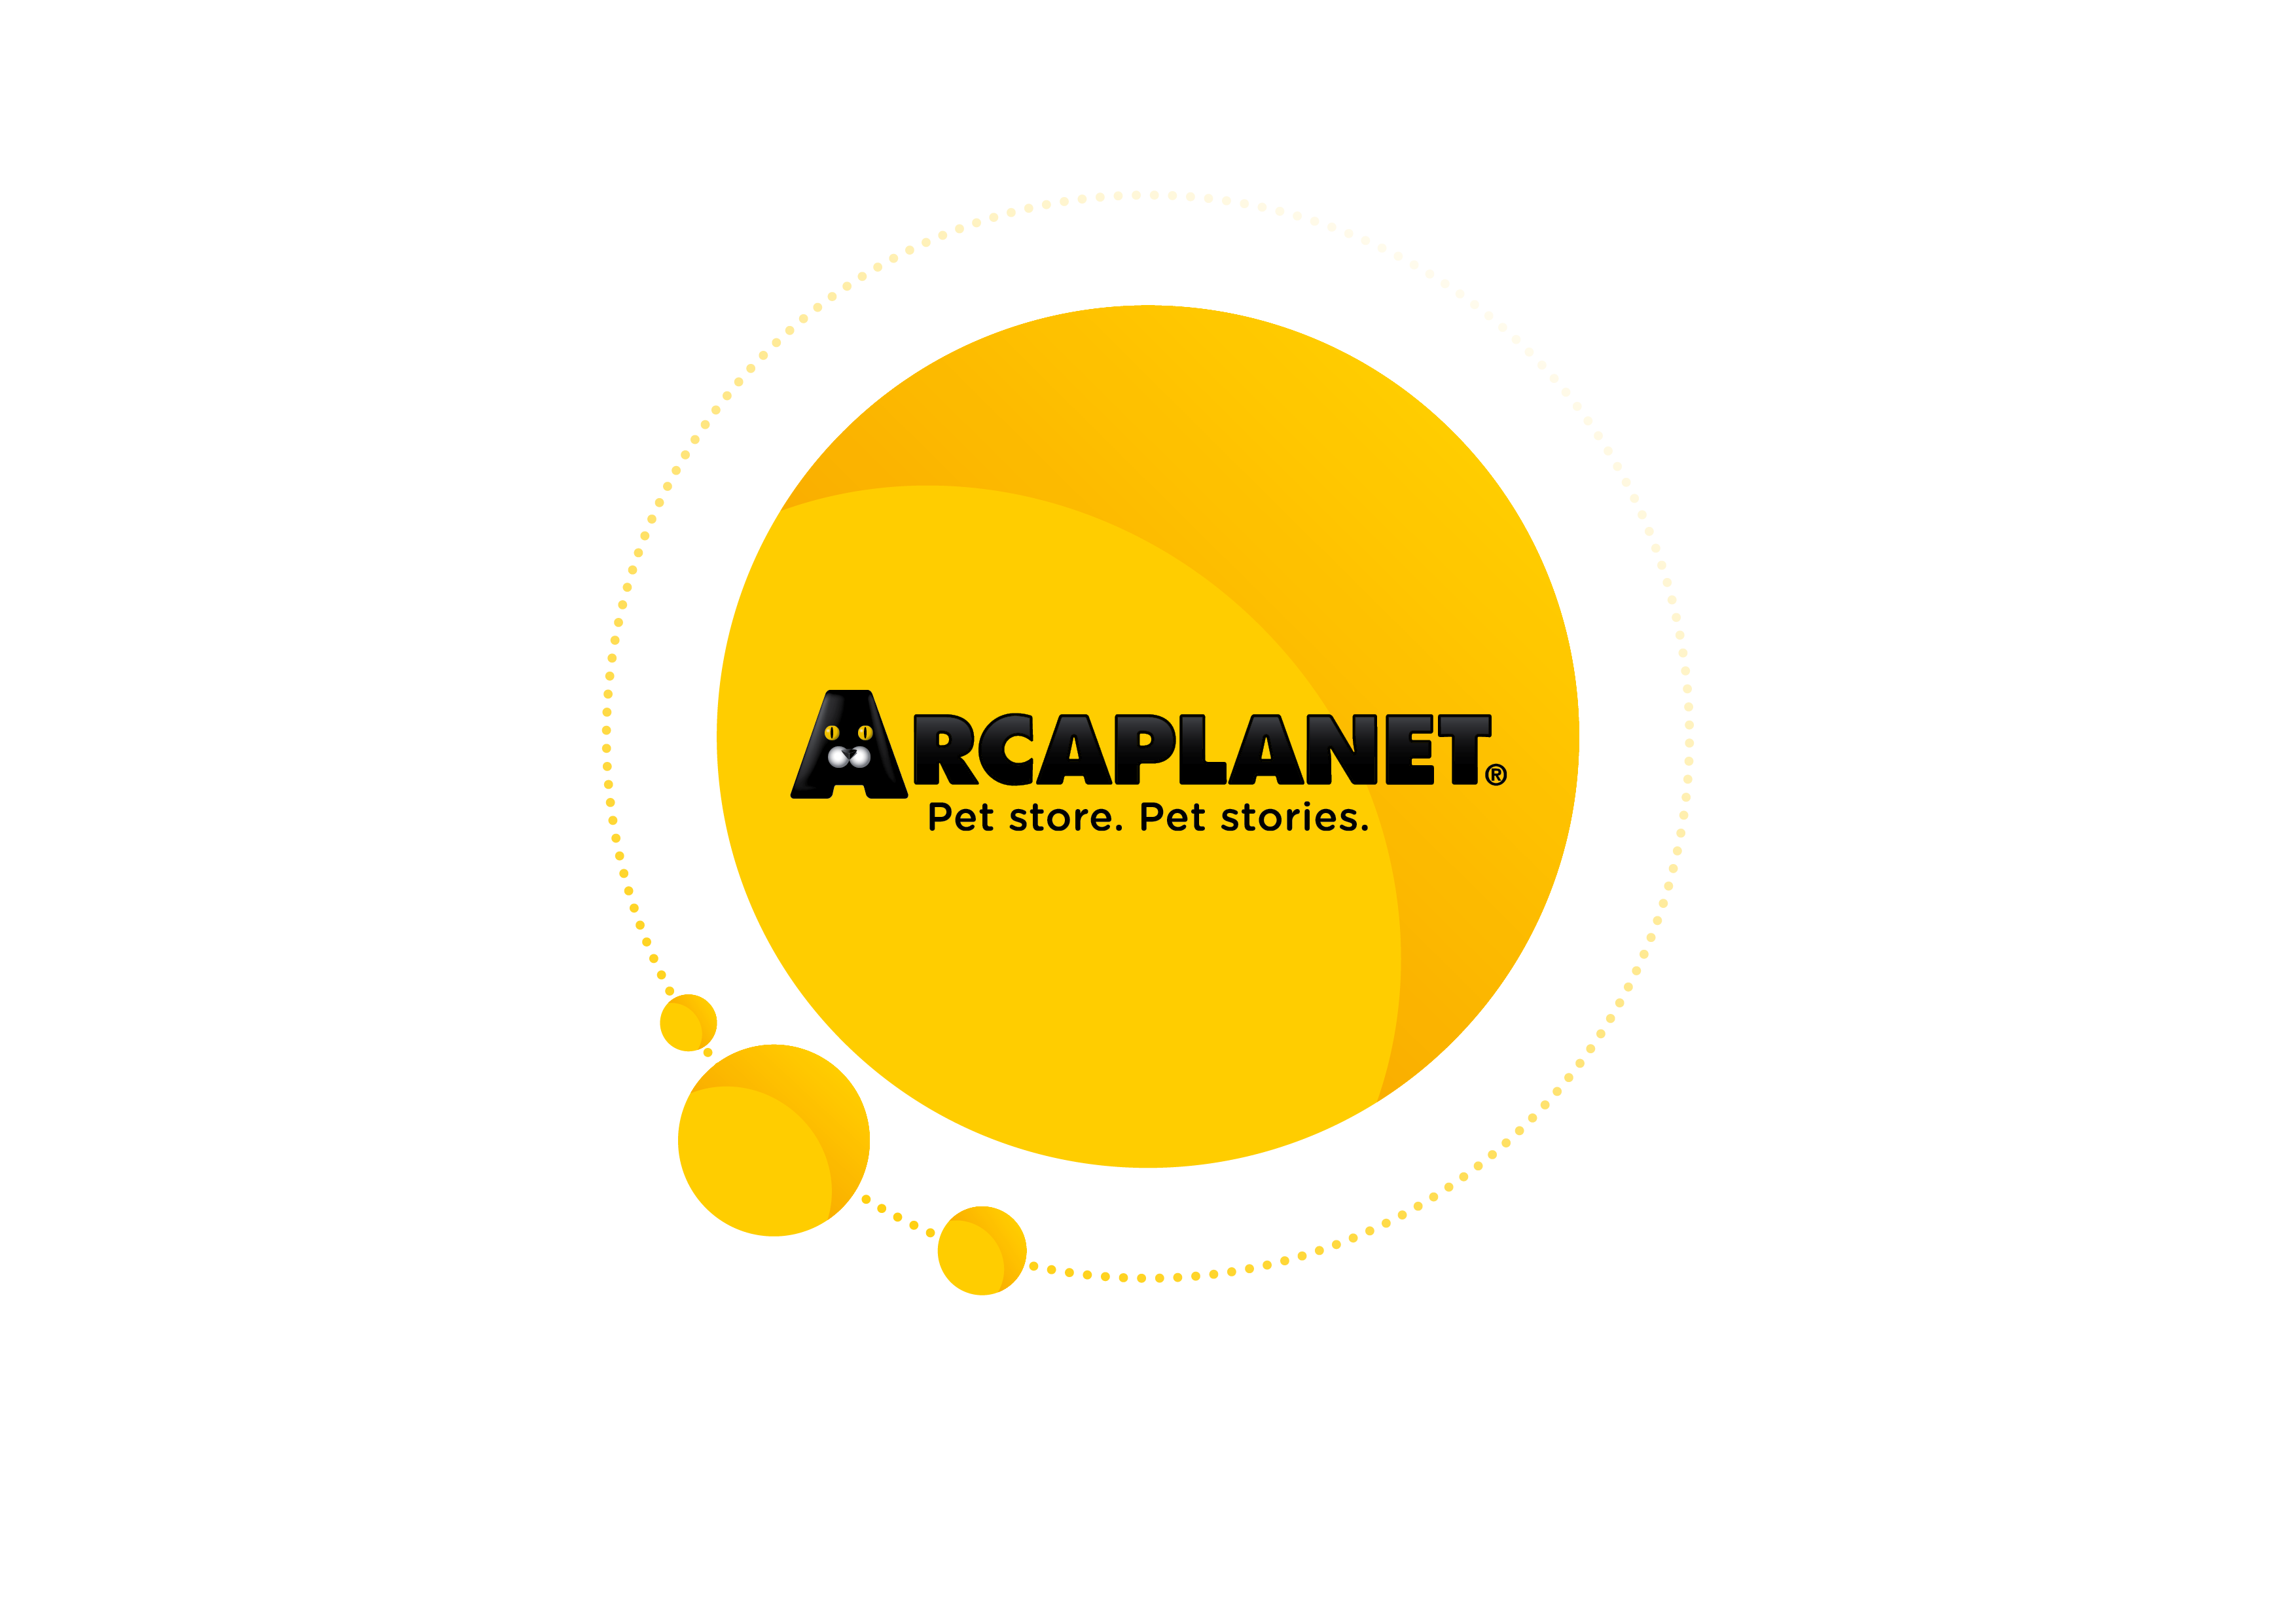 Arcaplanet ad Expopet 2017: Pet Store, Pet Stories